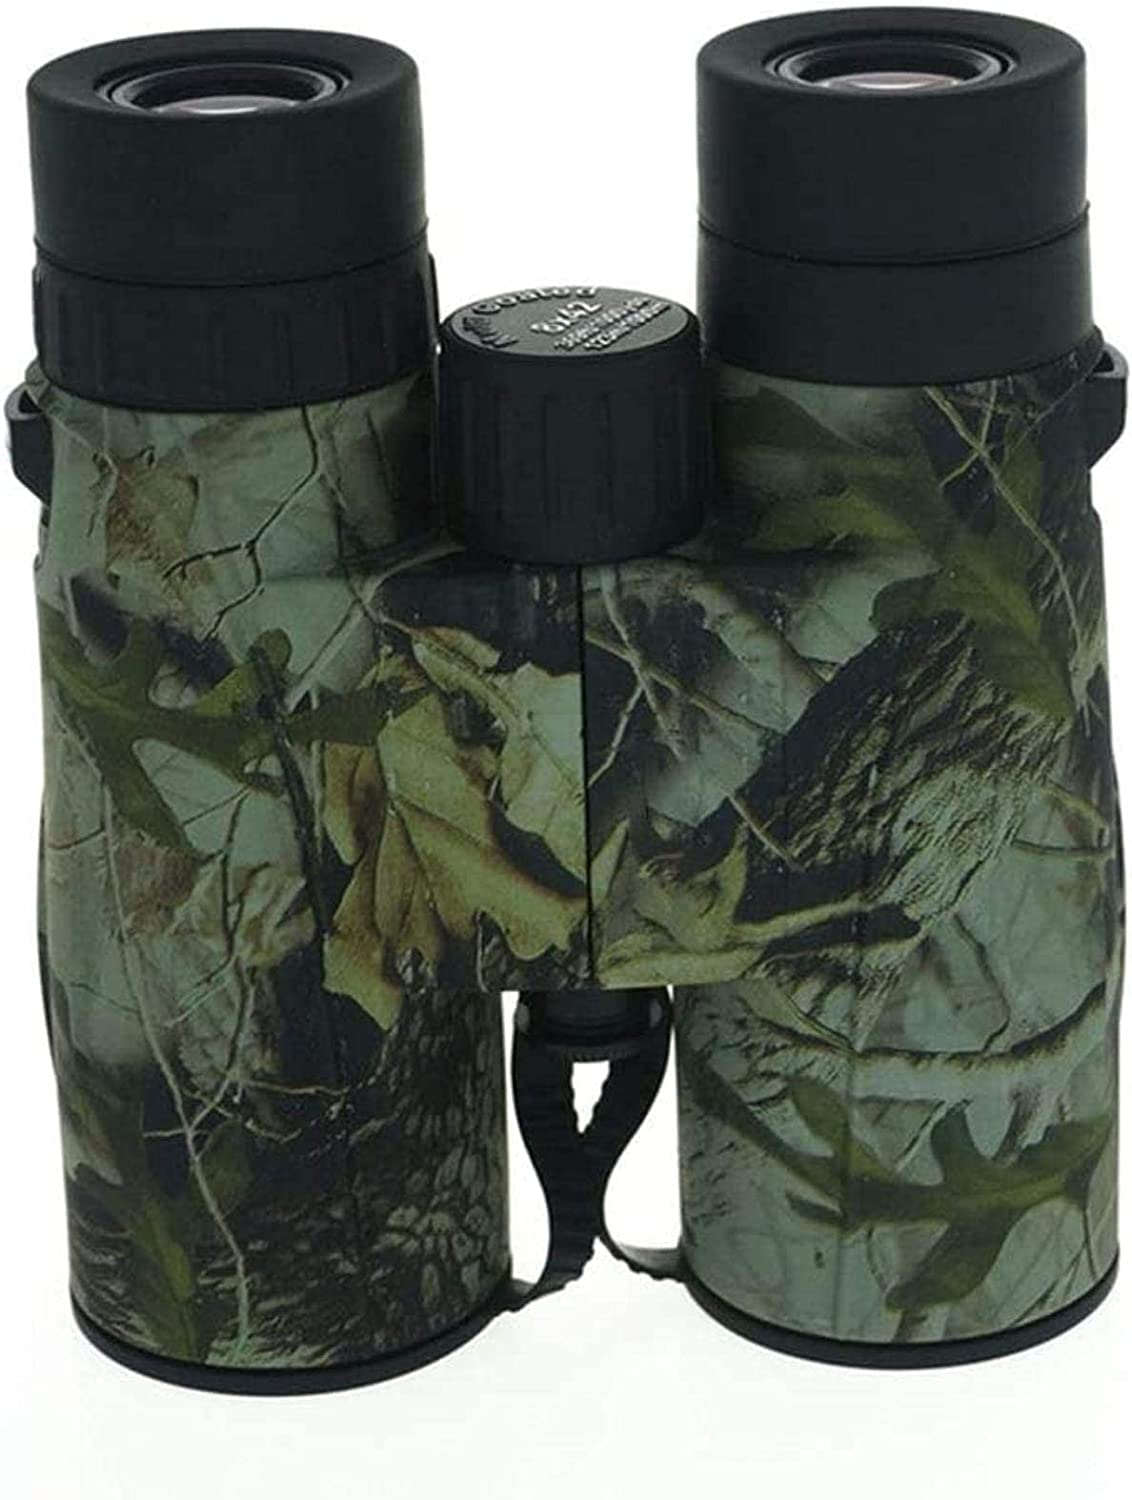 HAOLI Binoculars with High Magnification Night Vision Fis HD for Max 90% OFF Excellence